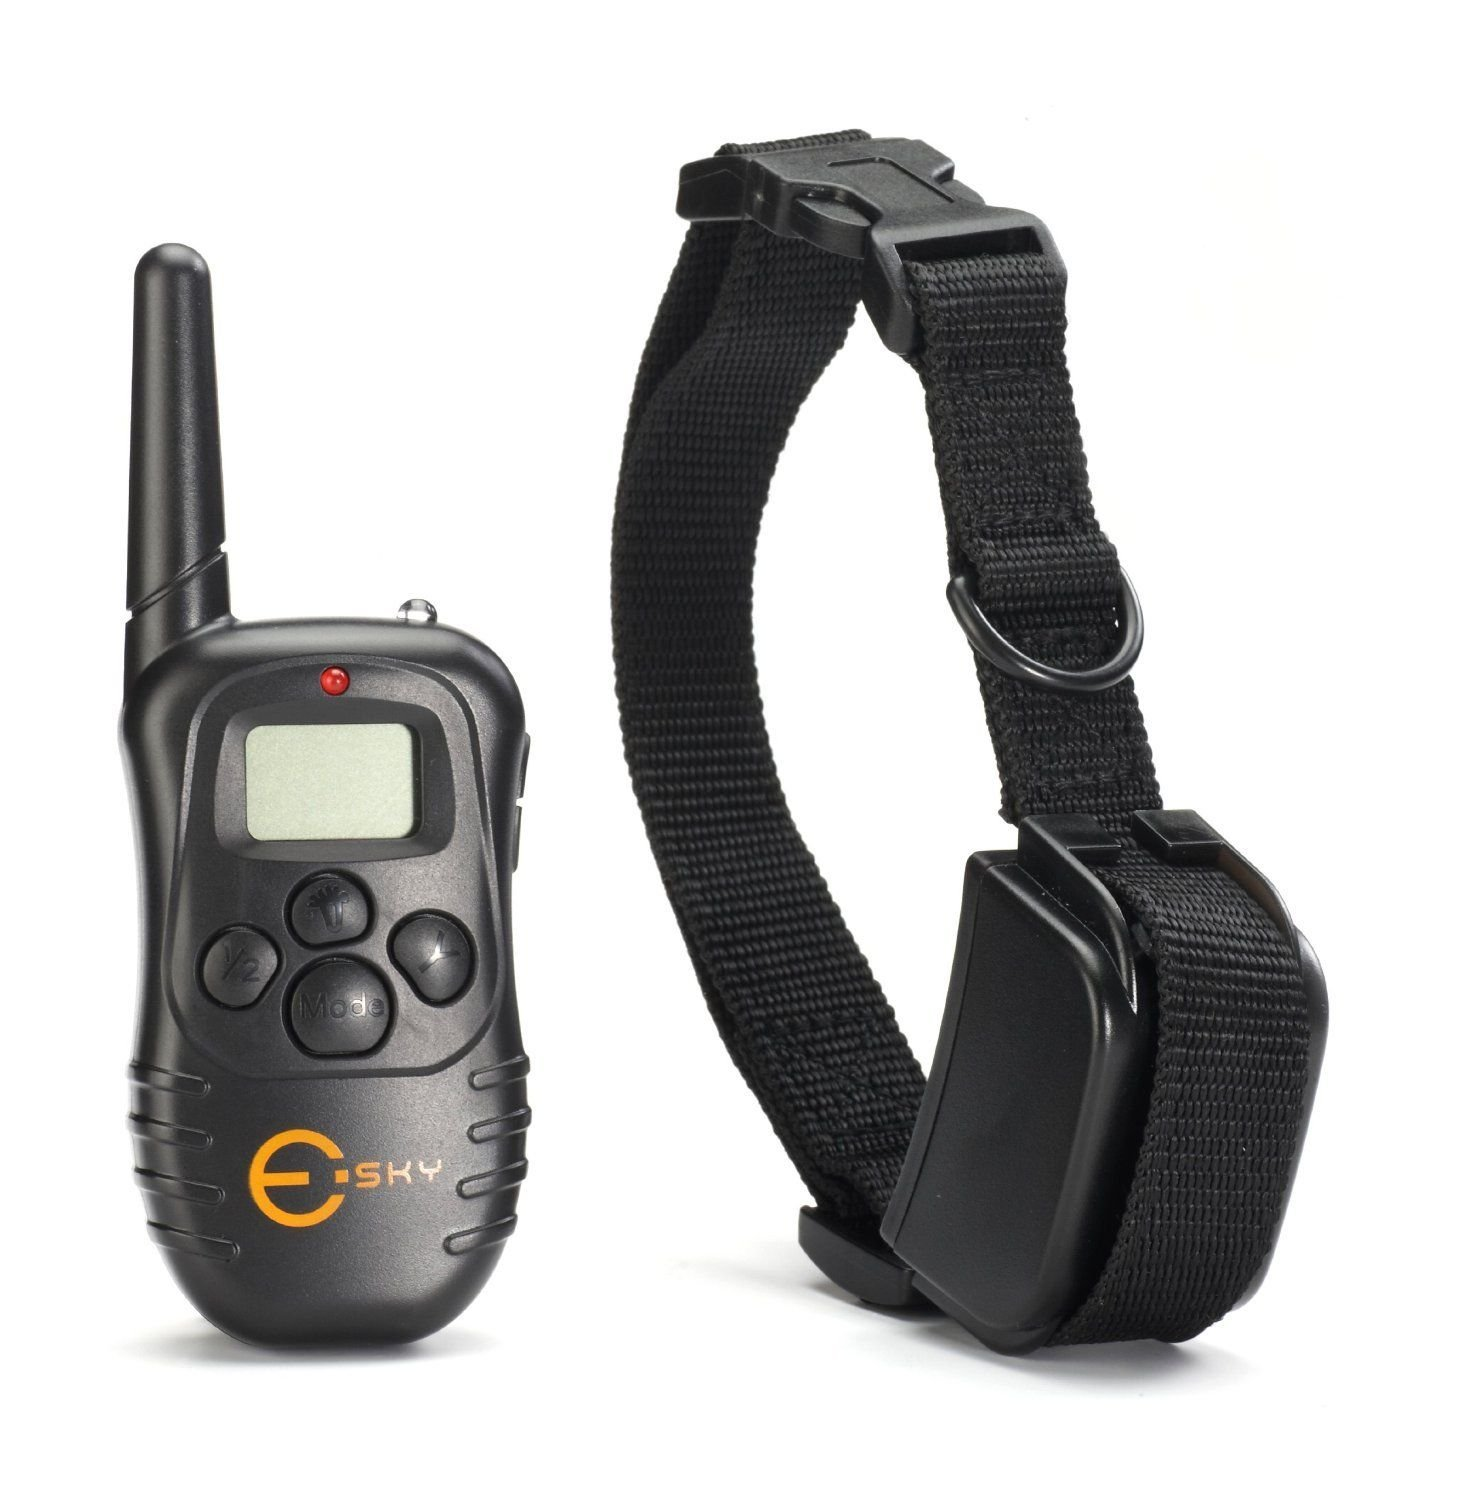 Dog Training Bark Collar With Remote